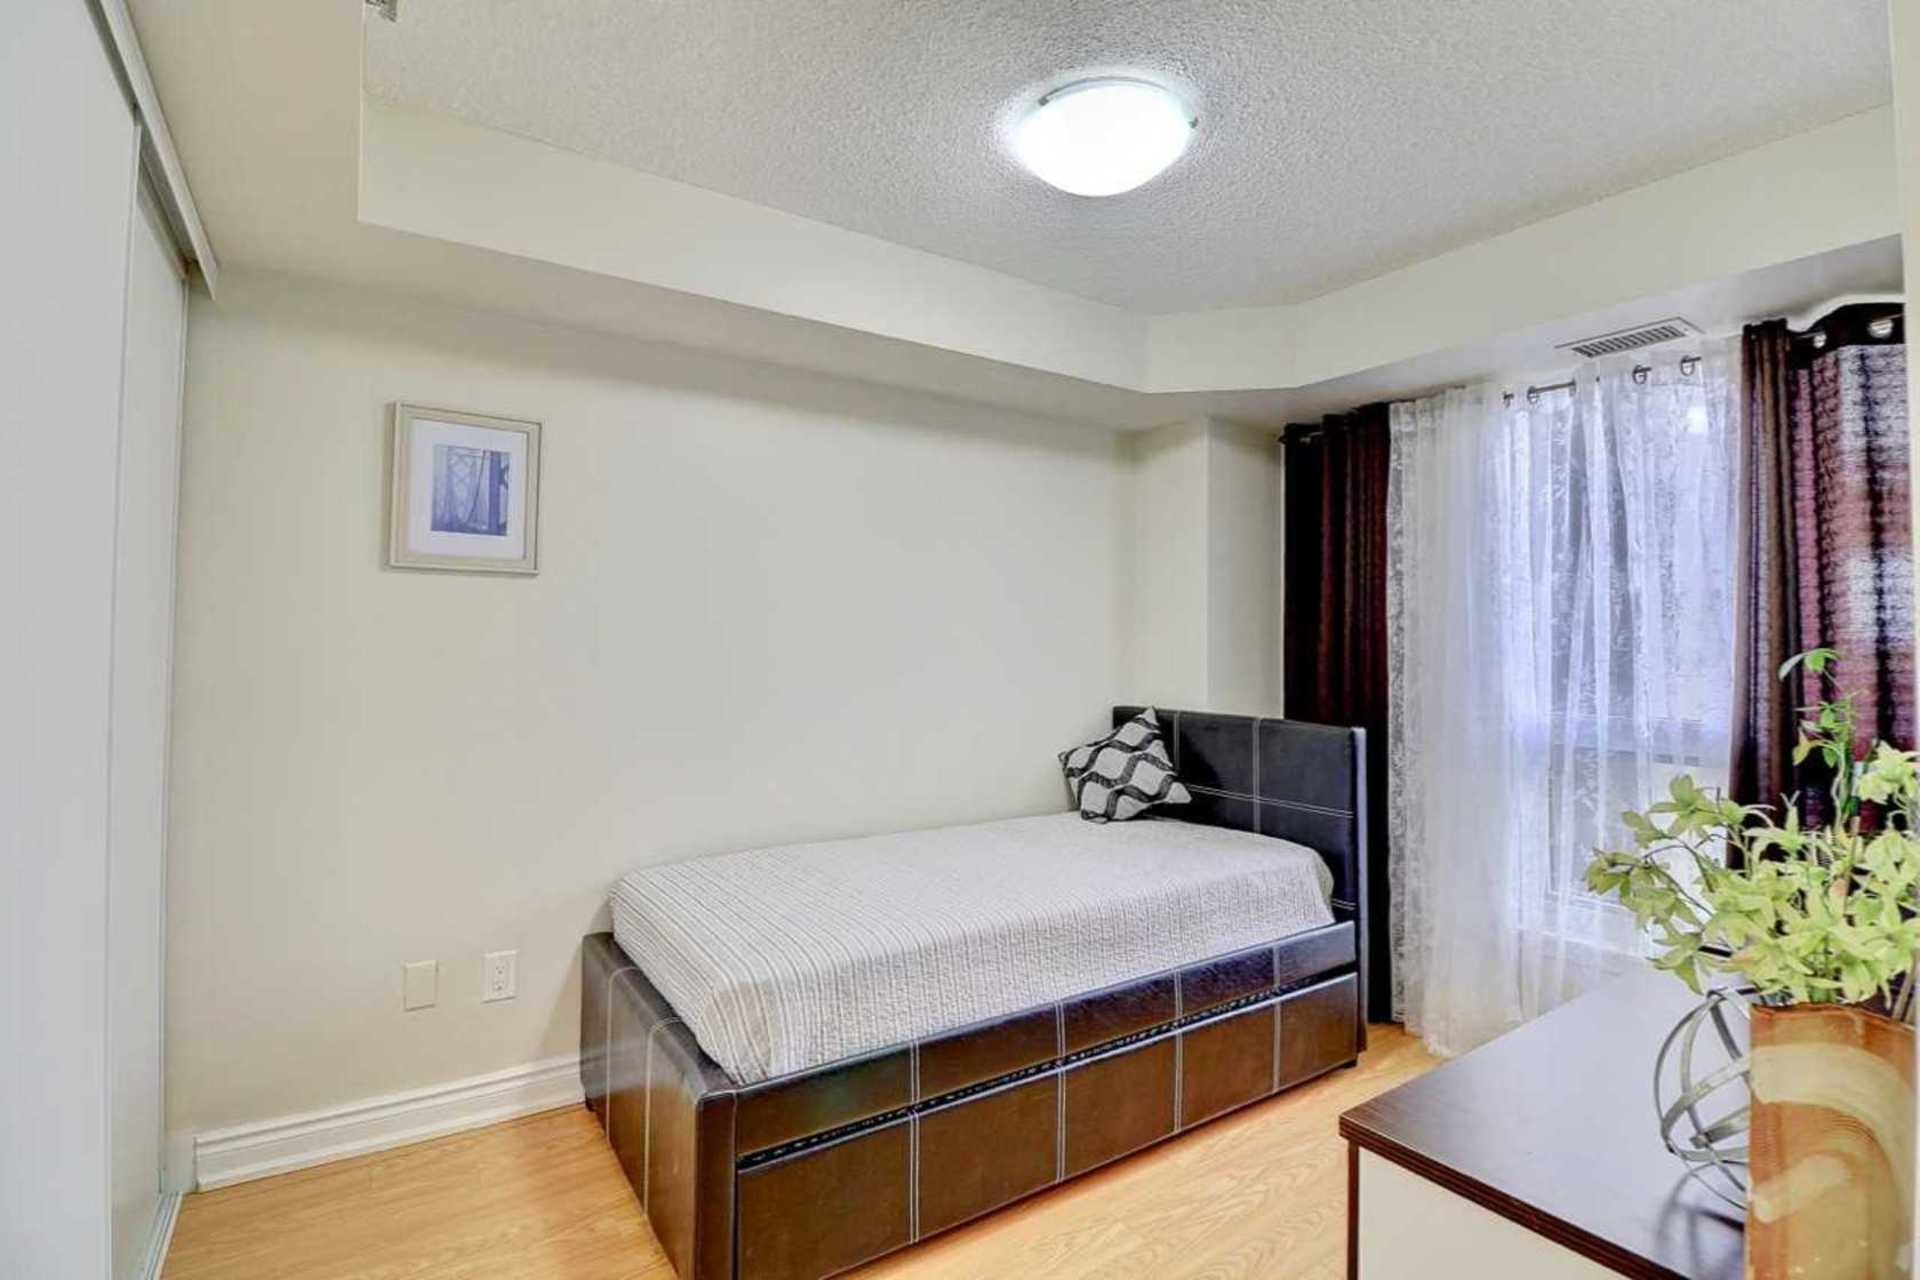 Bedroom at 401 - 760 Sheppard Avenue W, Bathurst Manor, Toronto